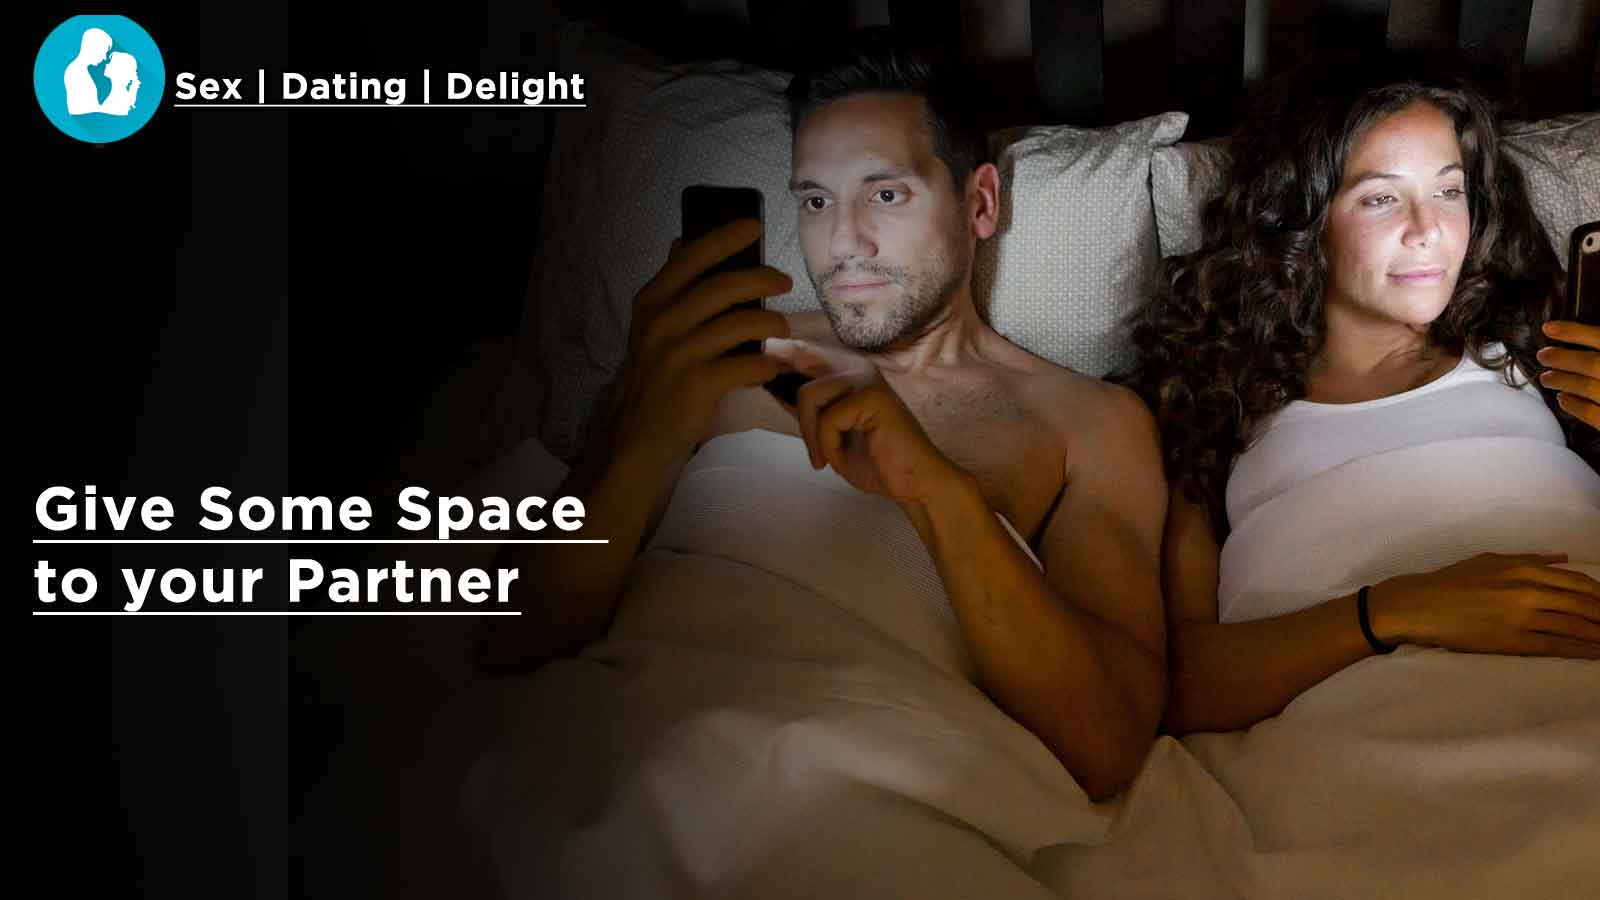 Give Some Space to your Partner